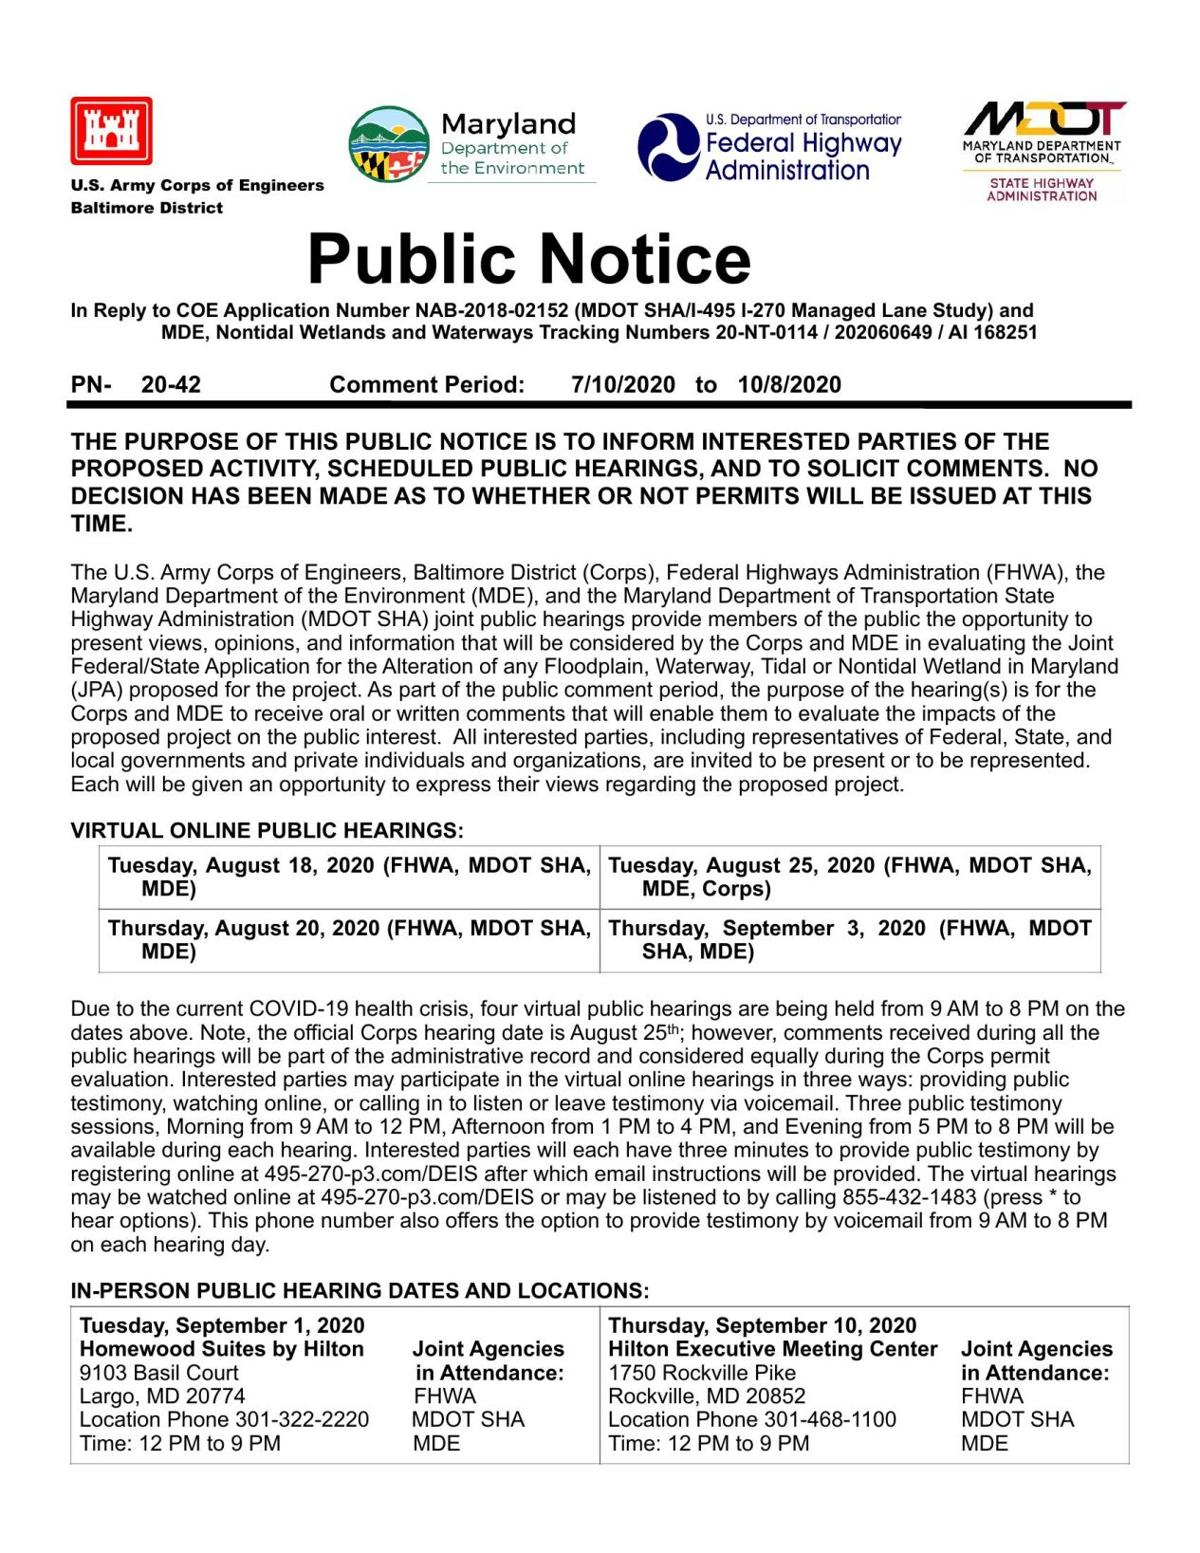 Public Notice - State of Maryland